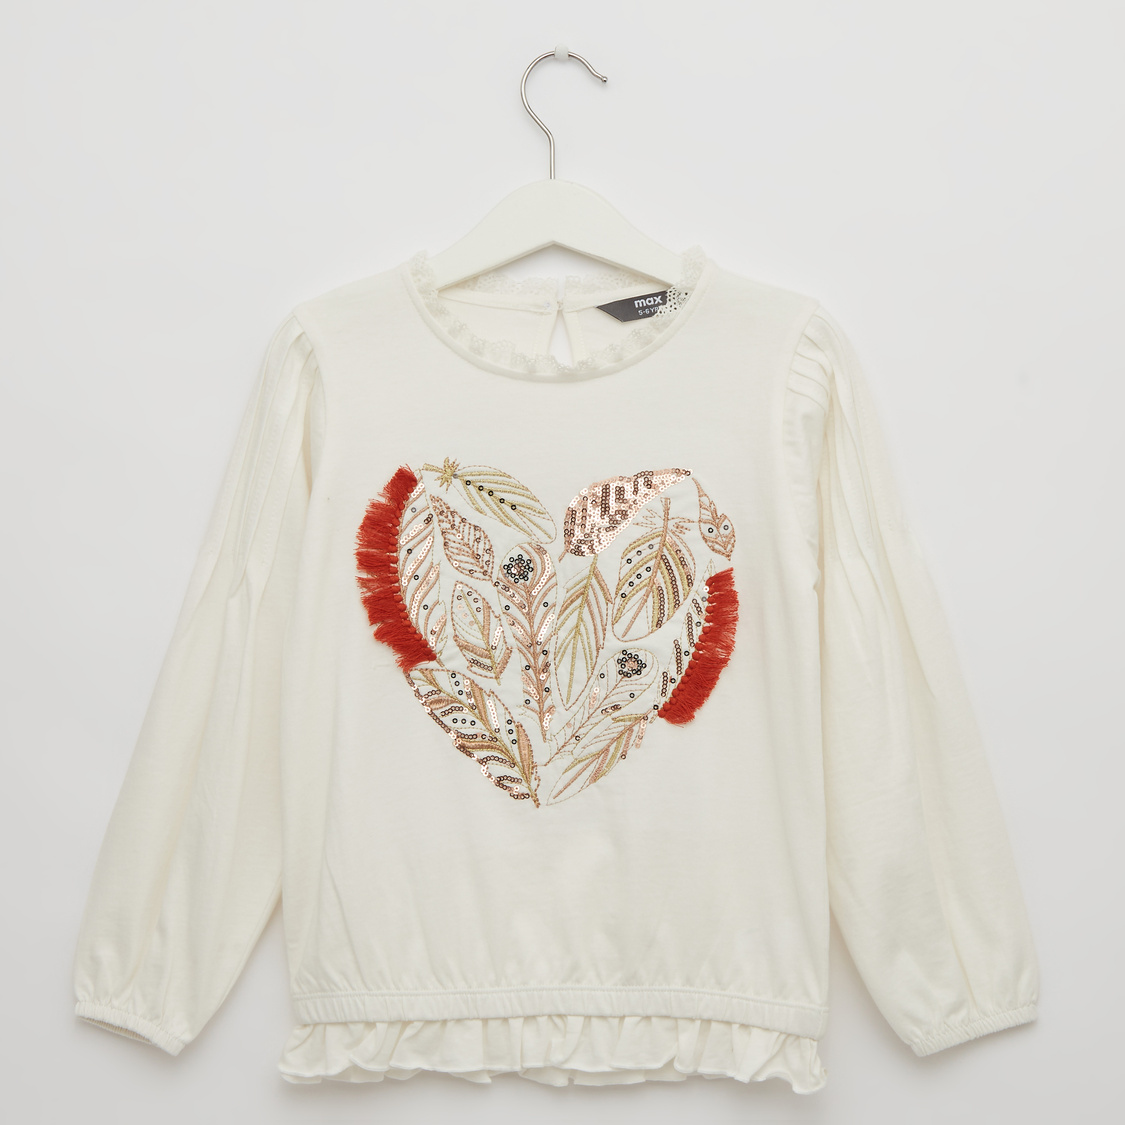 Embellished Round Neck Top with Long Sleeves